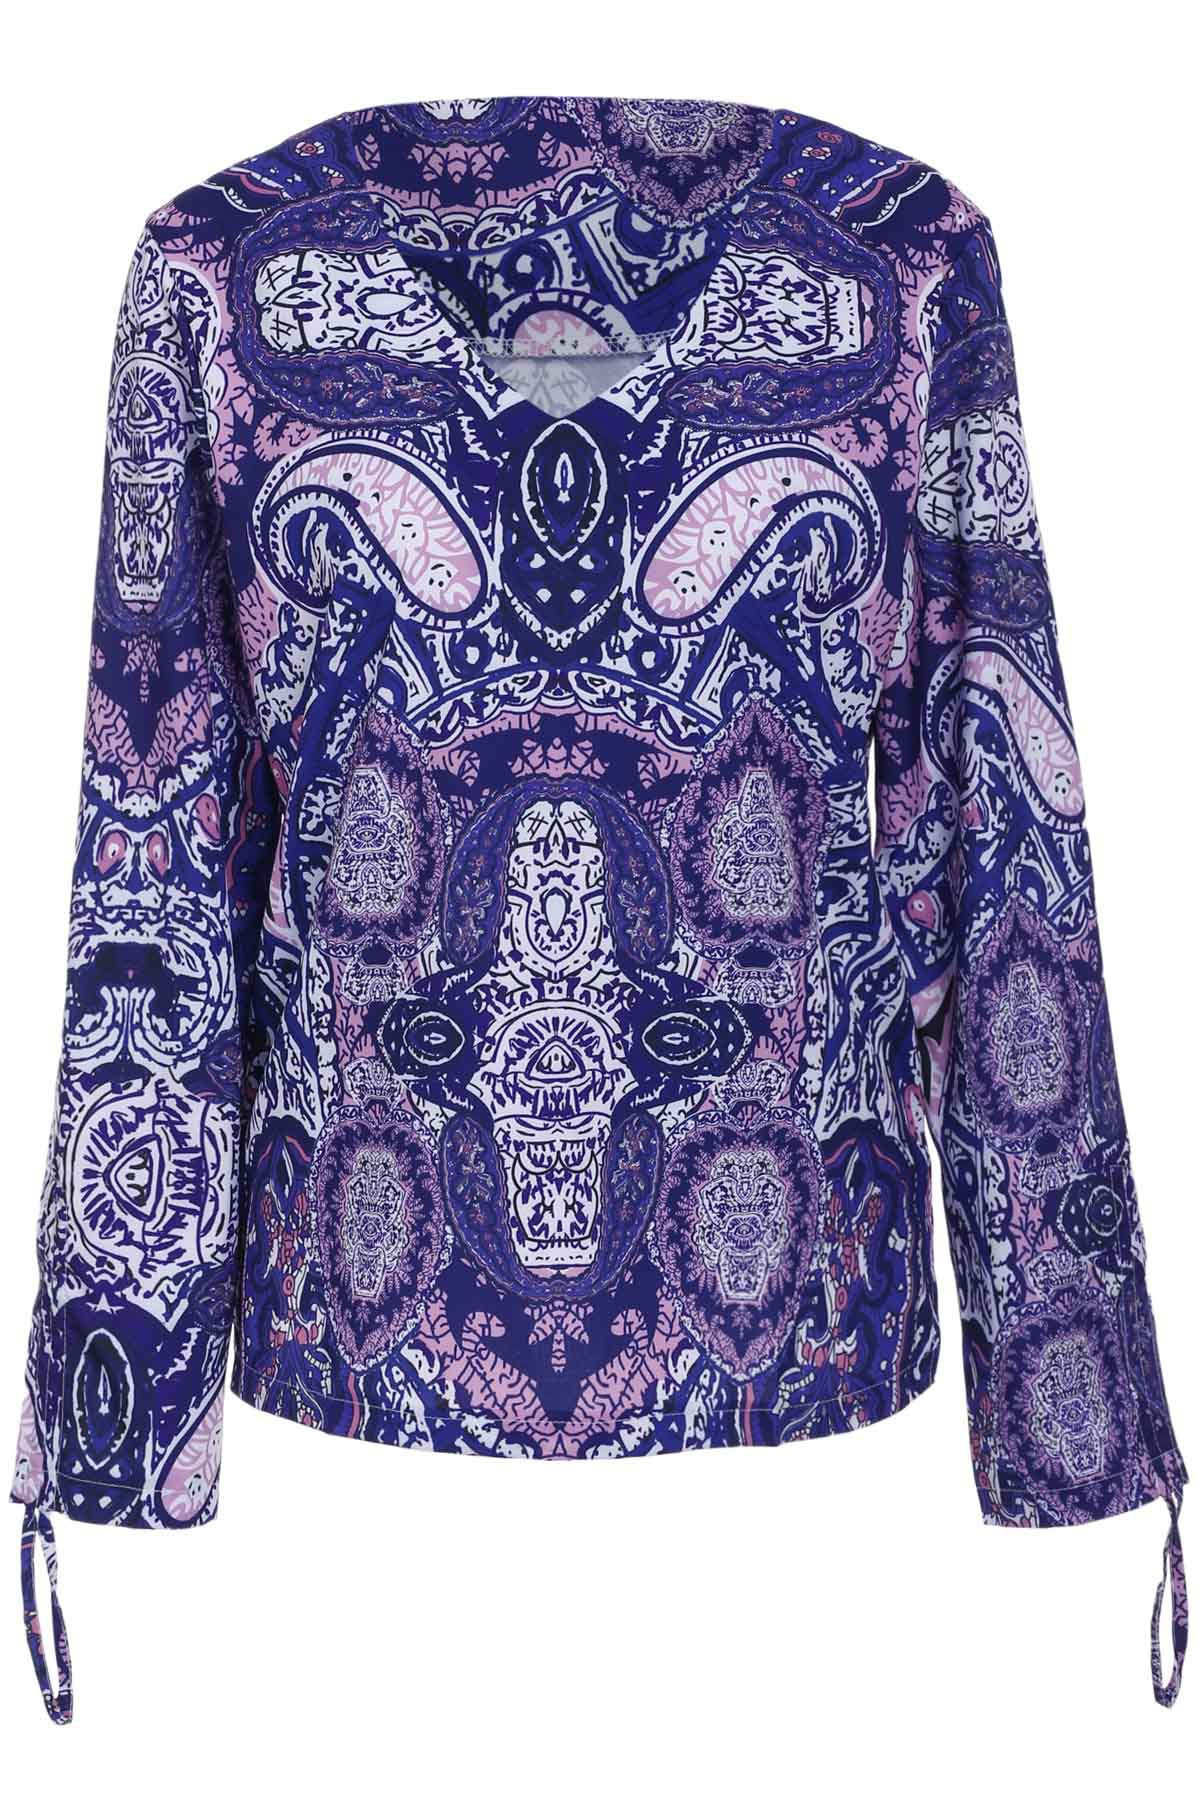 Women's Long Sleeve V-Neck Ethnic Print Blouse - COLORMIX L